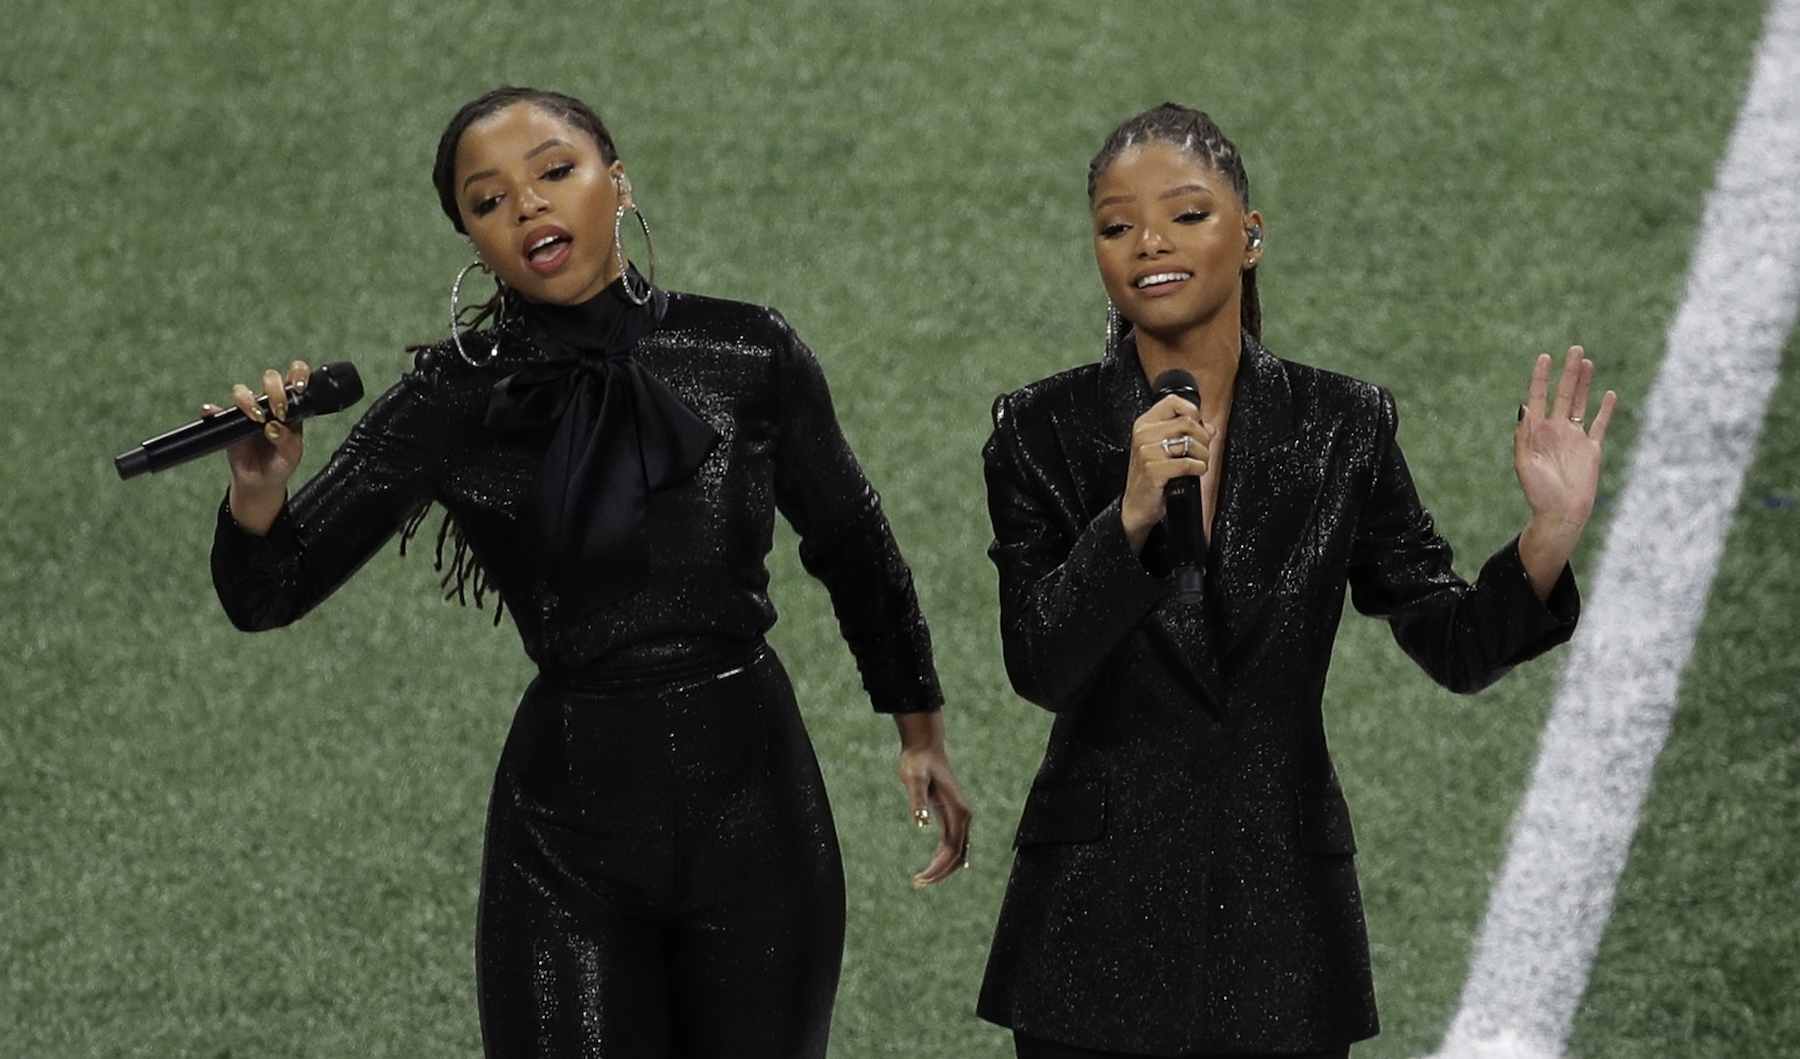 """<div class=""""meta image-caption""""><div class=""""origin-logo origin-image ap""""><span>AP</span></div><span class=""""caption-text"""">Chloe x Halle perform before the NFL Super Bowl 53 football game between the Los Angeles Rams and the New England Patriots Sunday, Feb. 3, 2019, in Atlanta. (AP Photo/Charlie Riedel)</span></div>"""